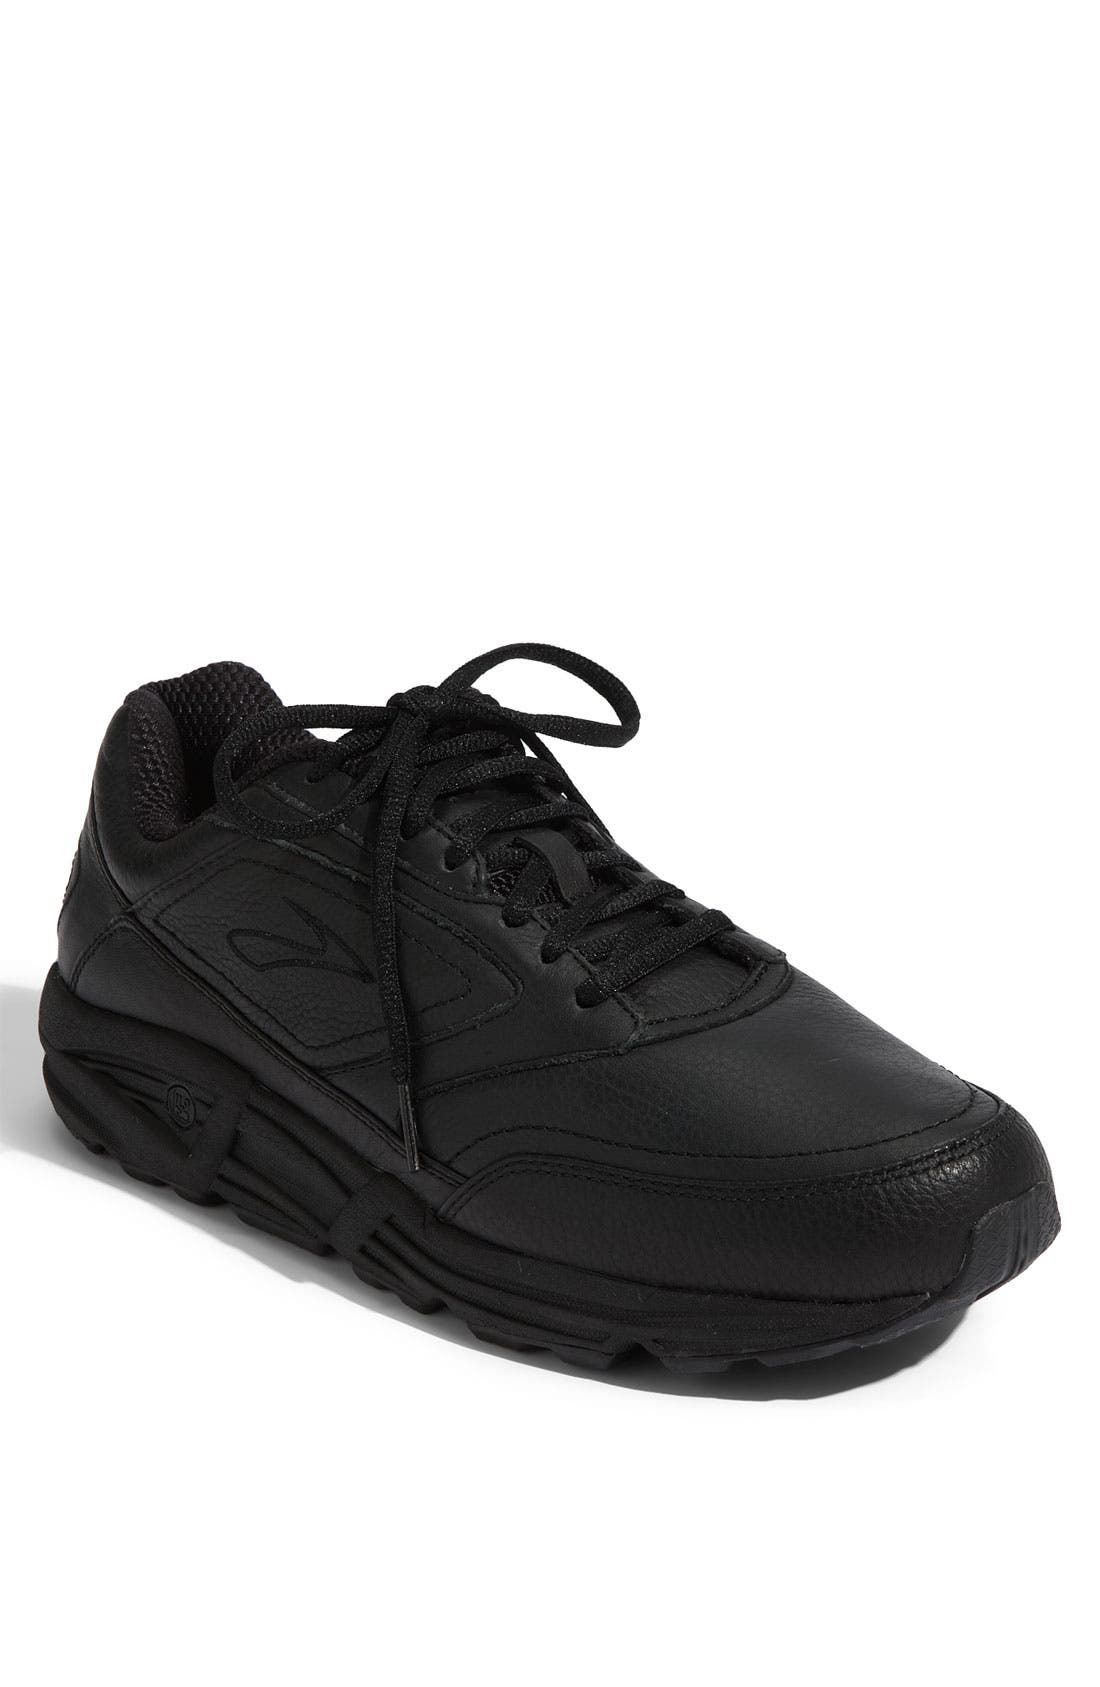 'Addiction' Walking Shoe,                         Main,                         color, Black